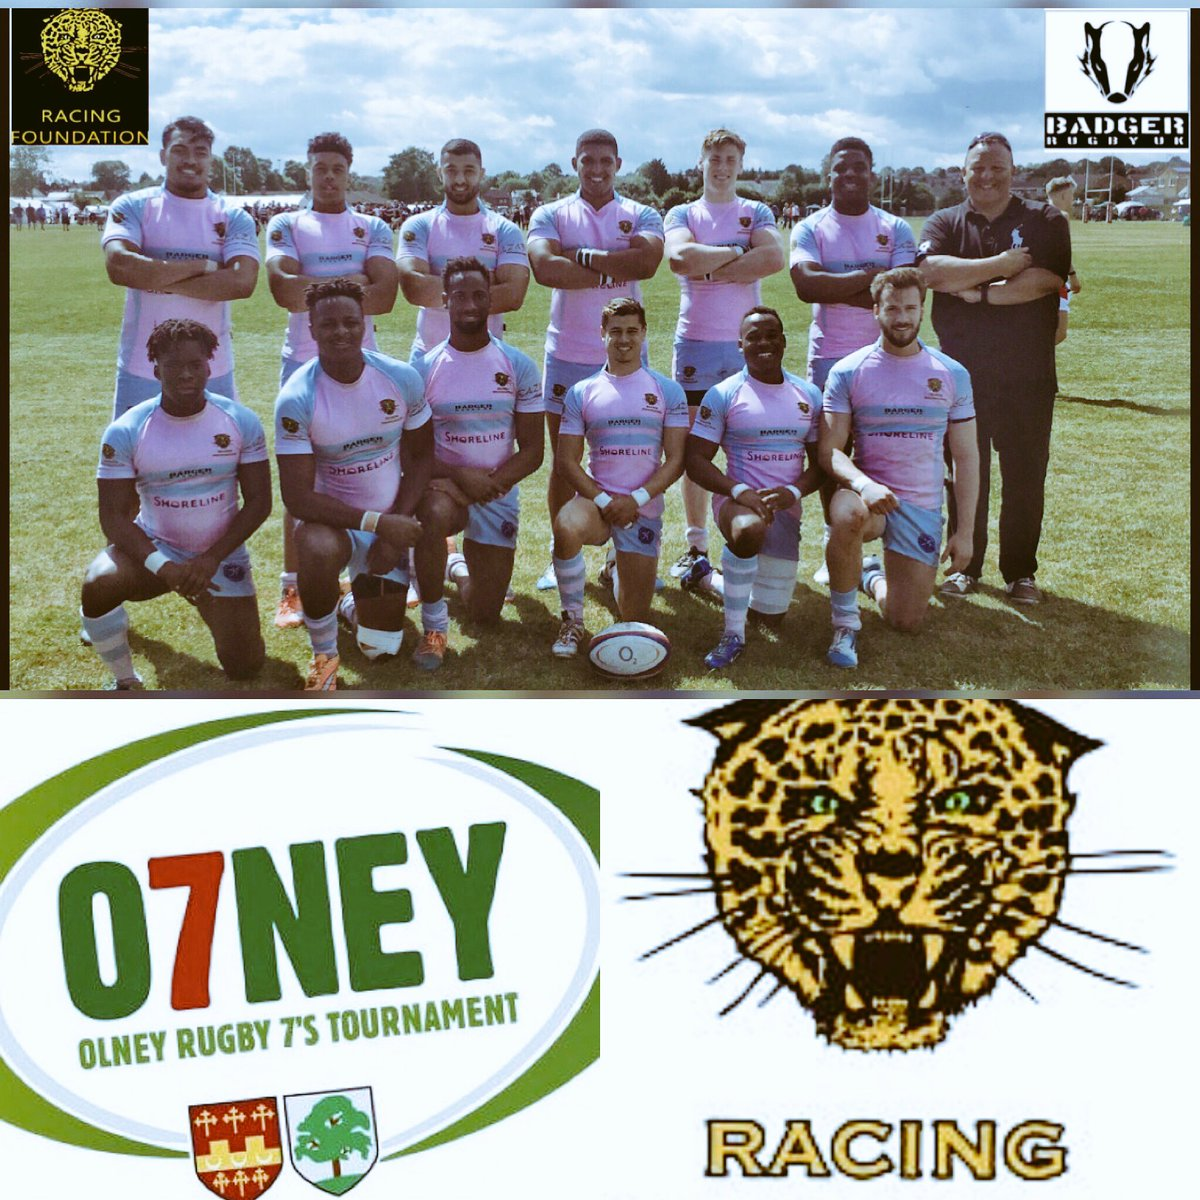 Good day @olney7s with @Racing_7s making Qtr finals B4 losing to winners @CoventryRugby 21-26. #youngguns #un20 #rugbyfamily #futurestars<br>http://pic.twitter.com/oeqxp8jS1i